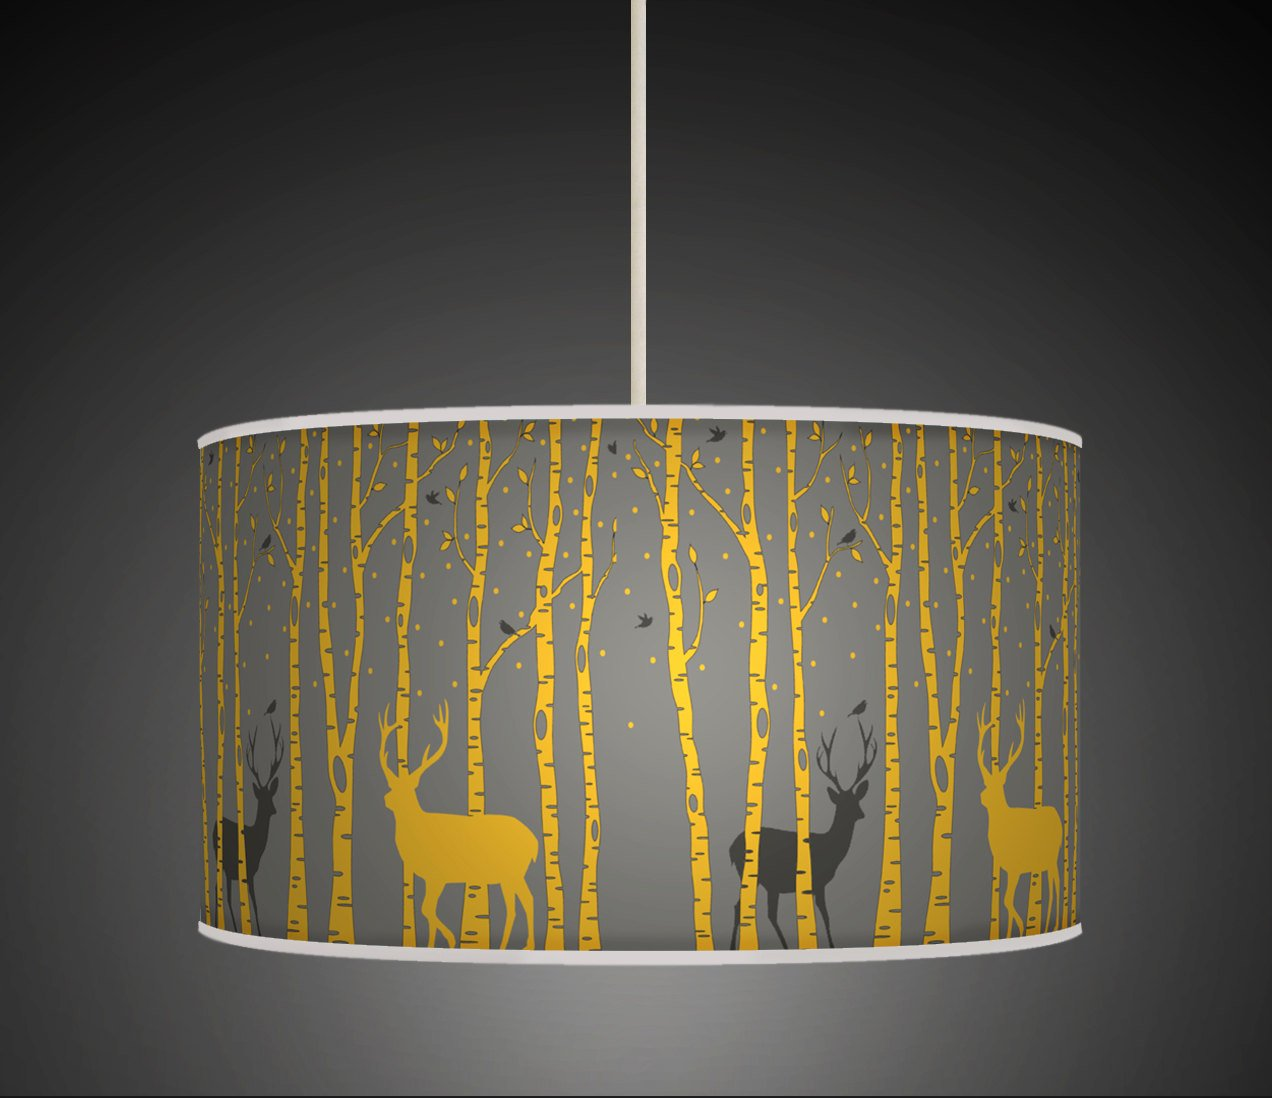 30cm Trees Stag Deer Mustard Yellow Grey Retro Handmade Giclee Style  Printed Fabric Lamp Drum Lampshade Floor Ceiling Pendant Light Shade 632:  Amazon.co.uk: ...